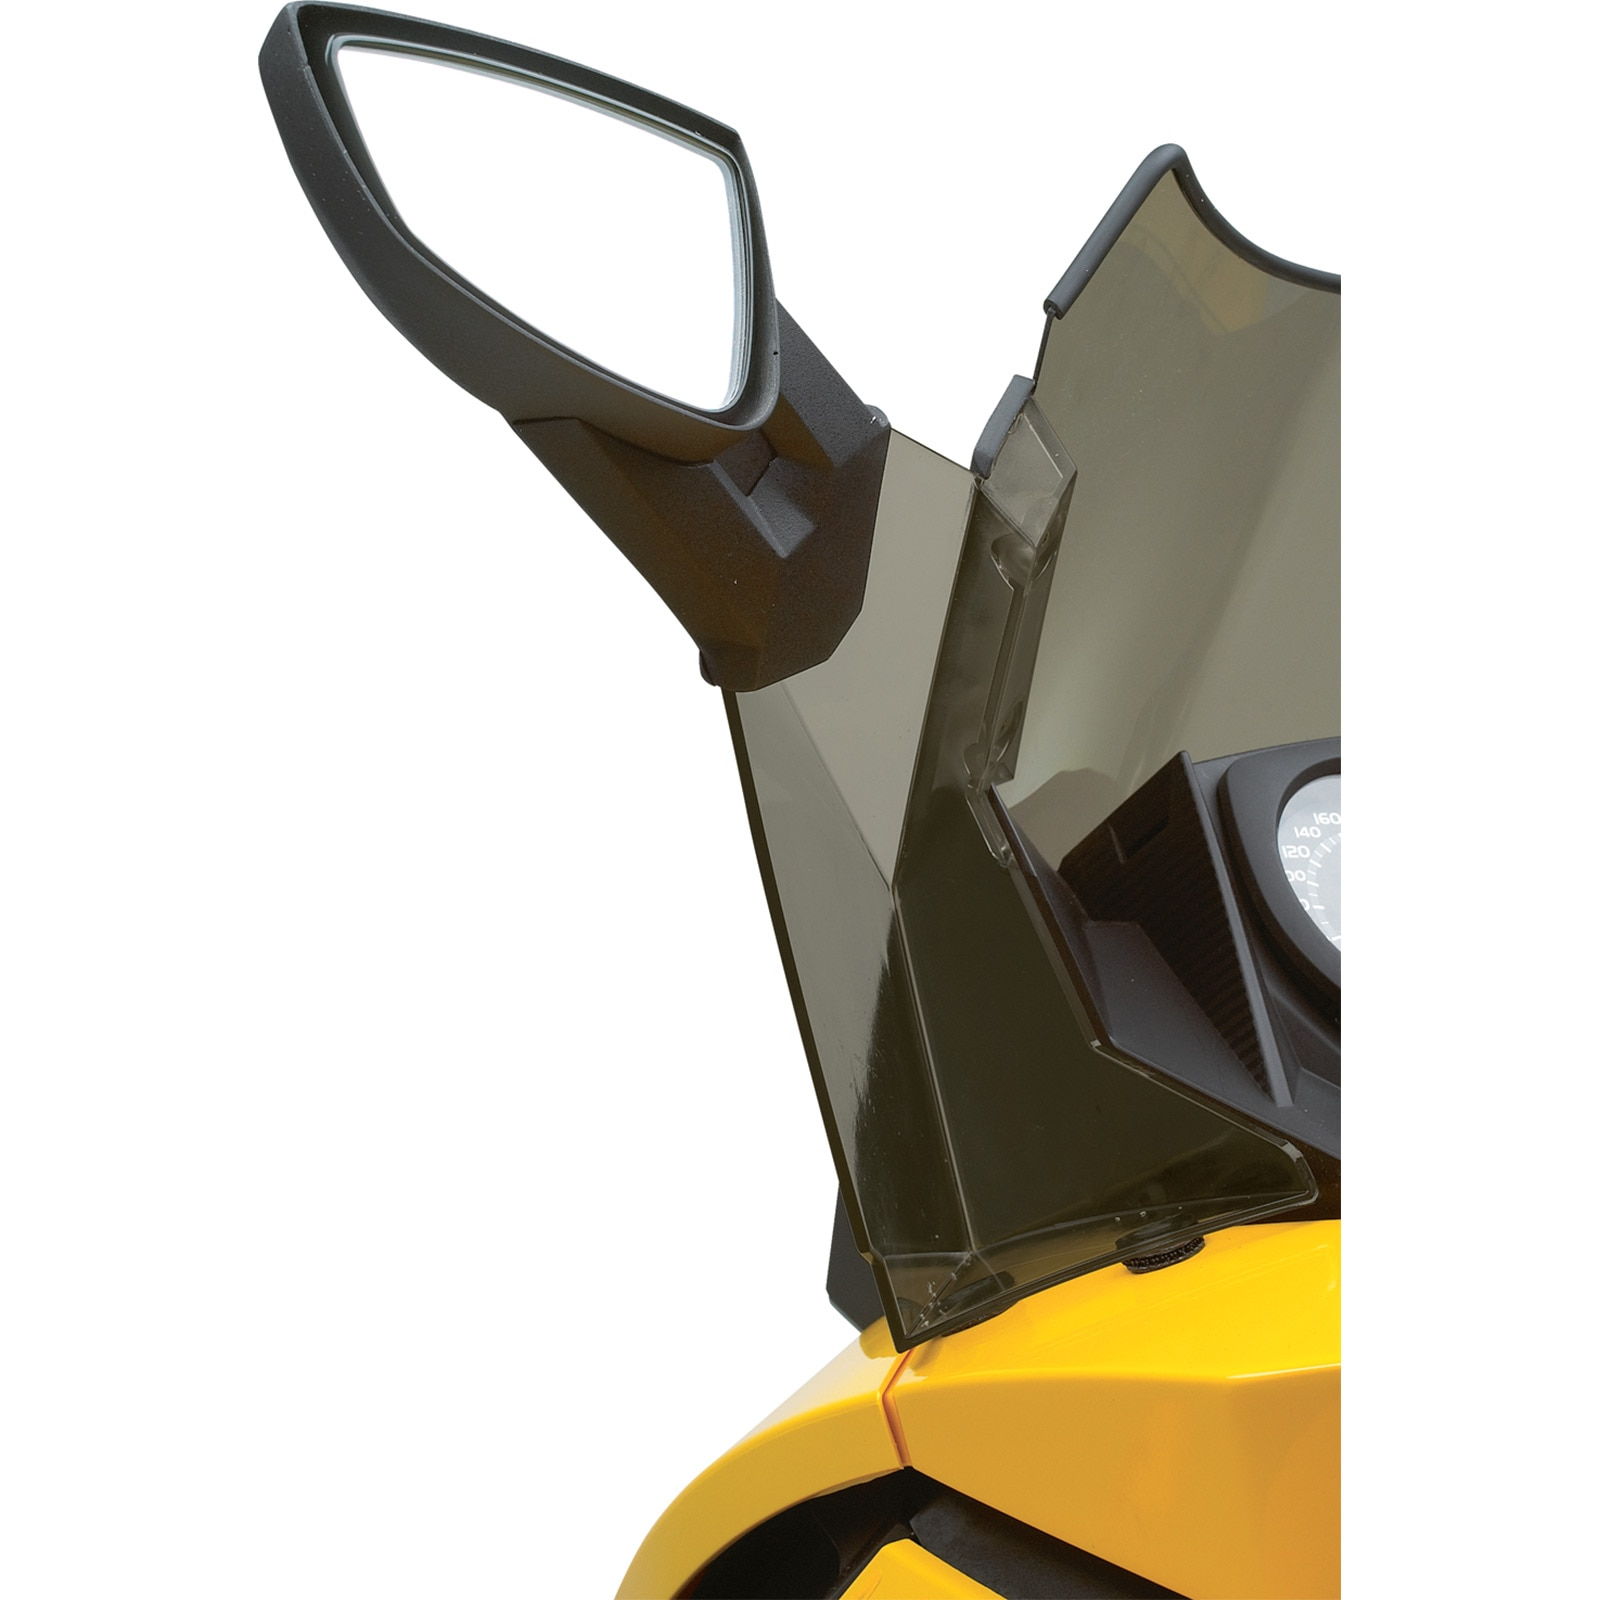 REV-XS Ski-Doo New OEM Medium /& High Windshield Wind Deflector Kit REV-XM